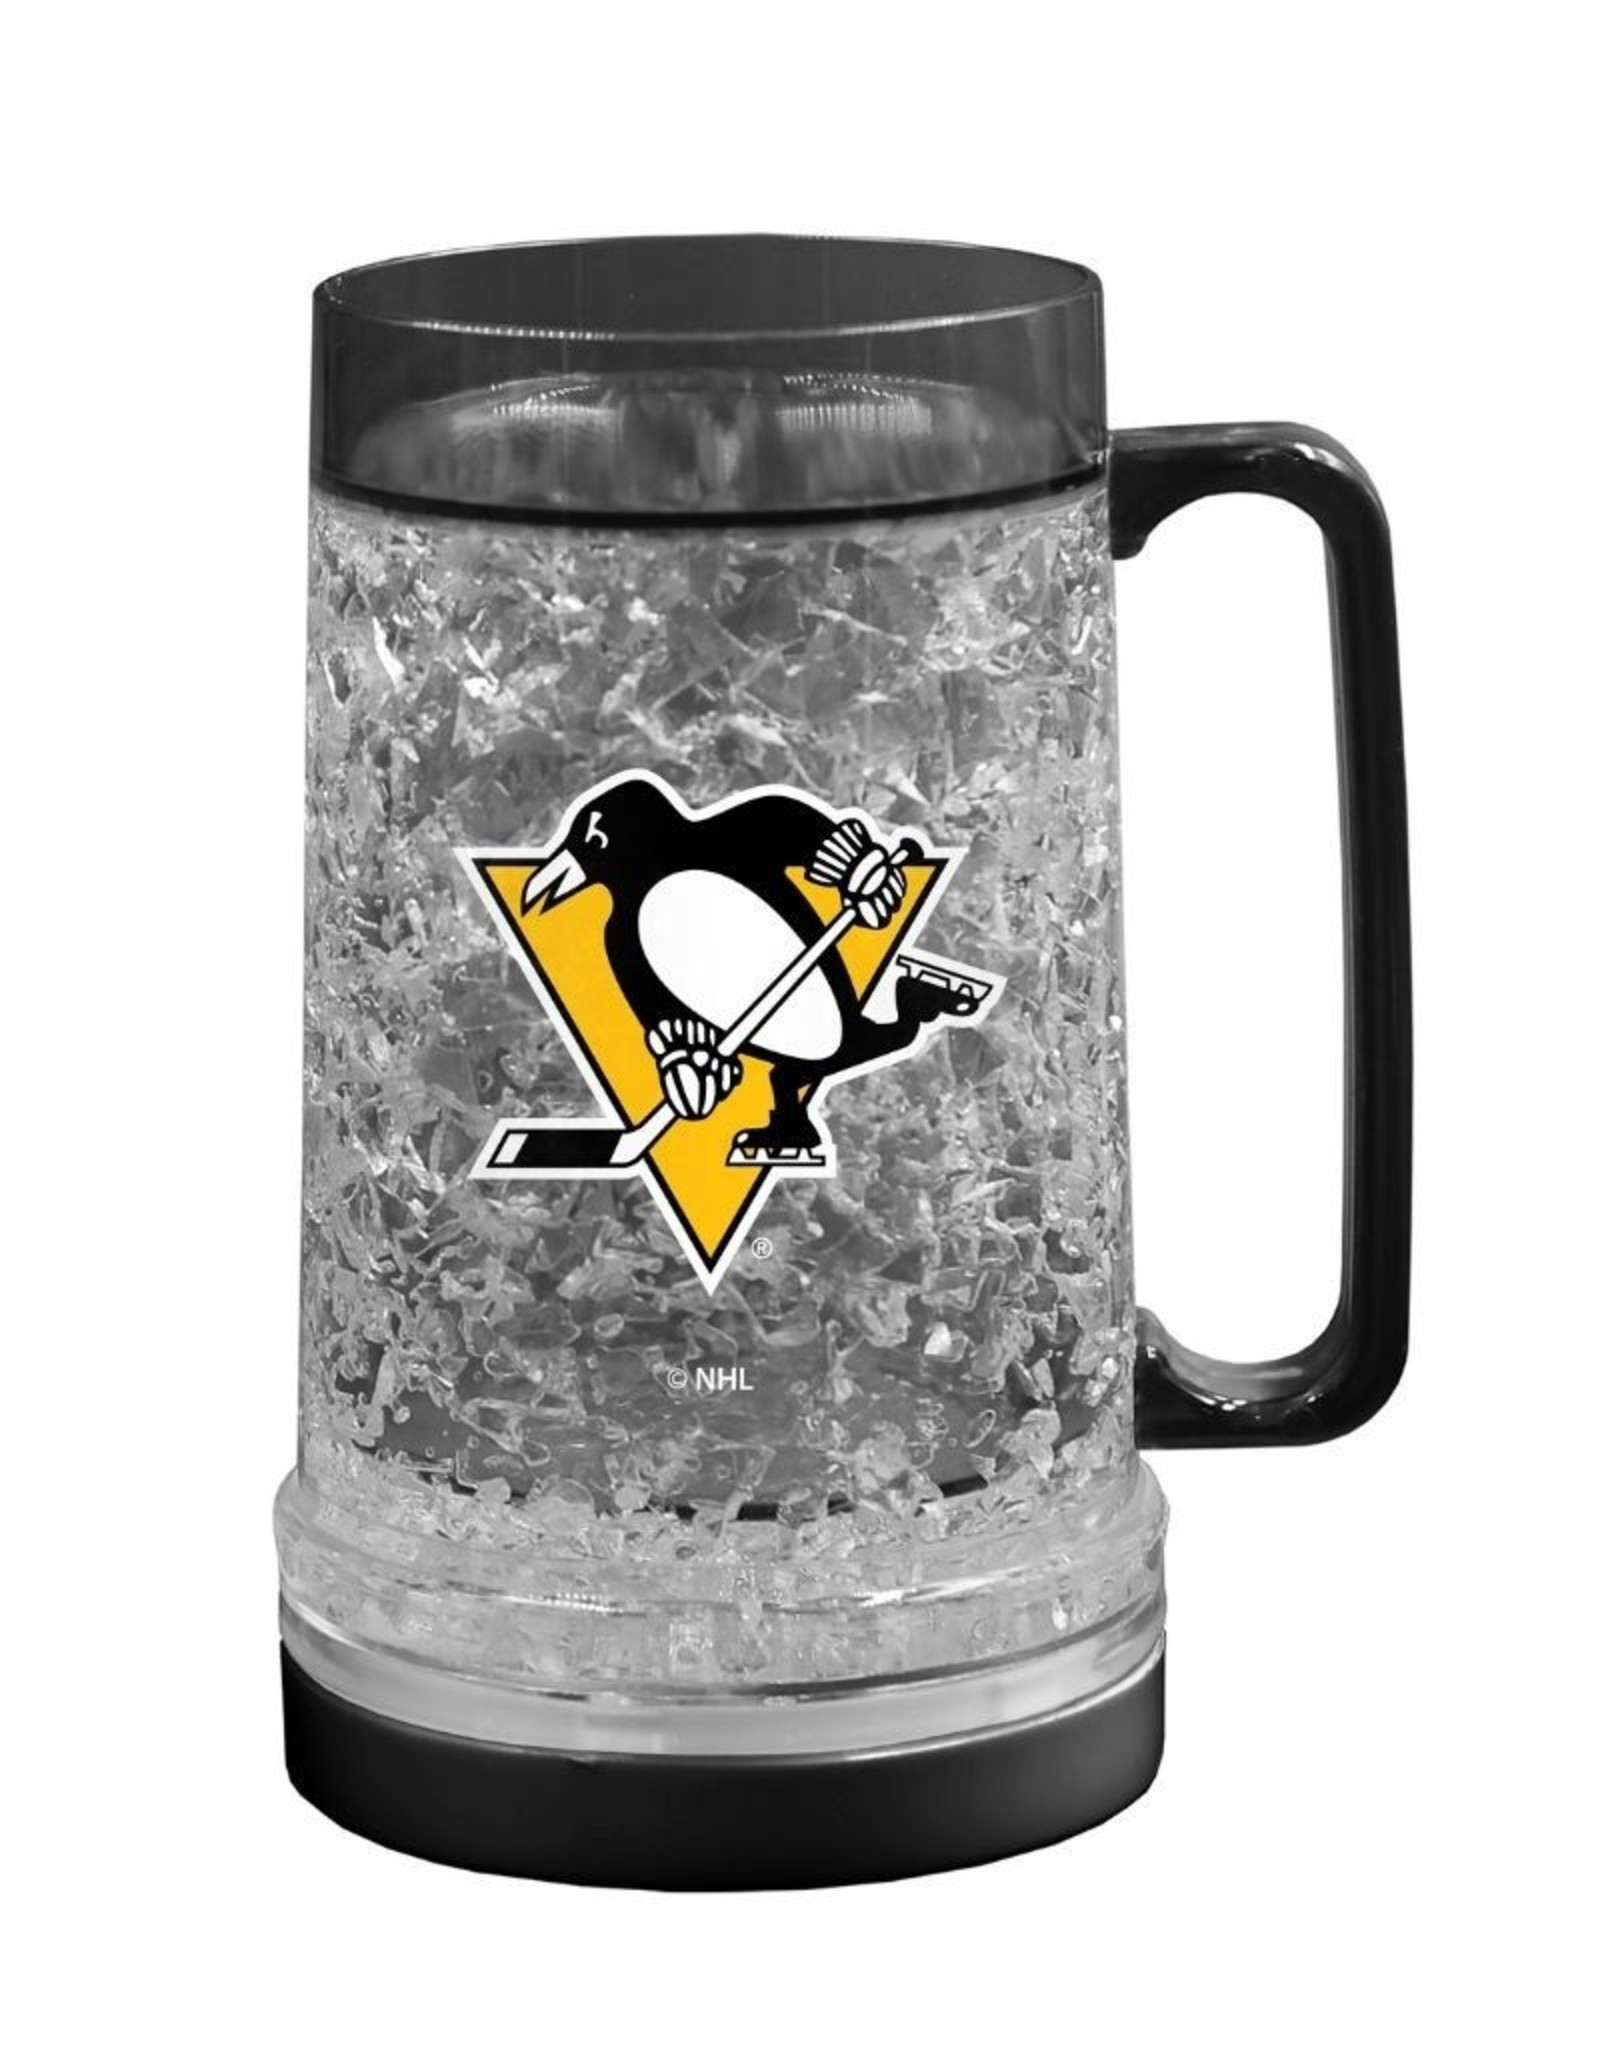 NHL Light Up Freezer Mug Penguins